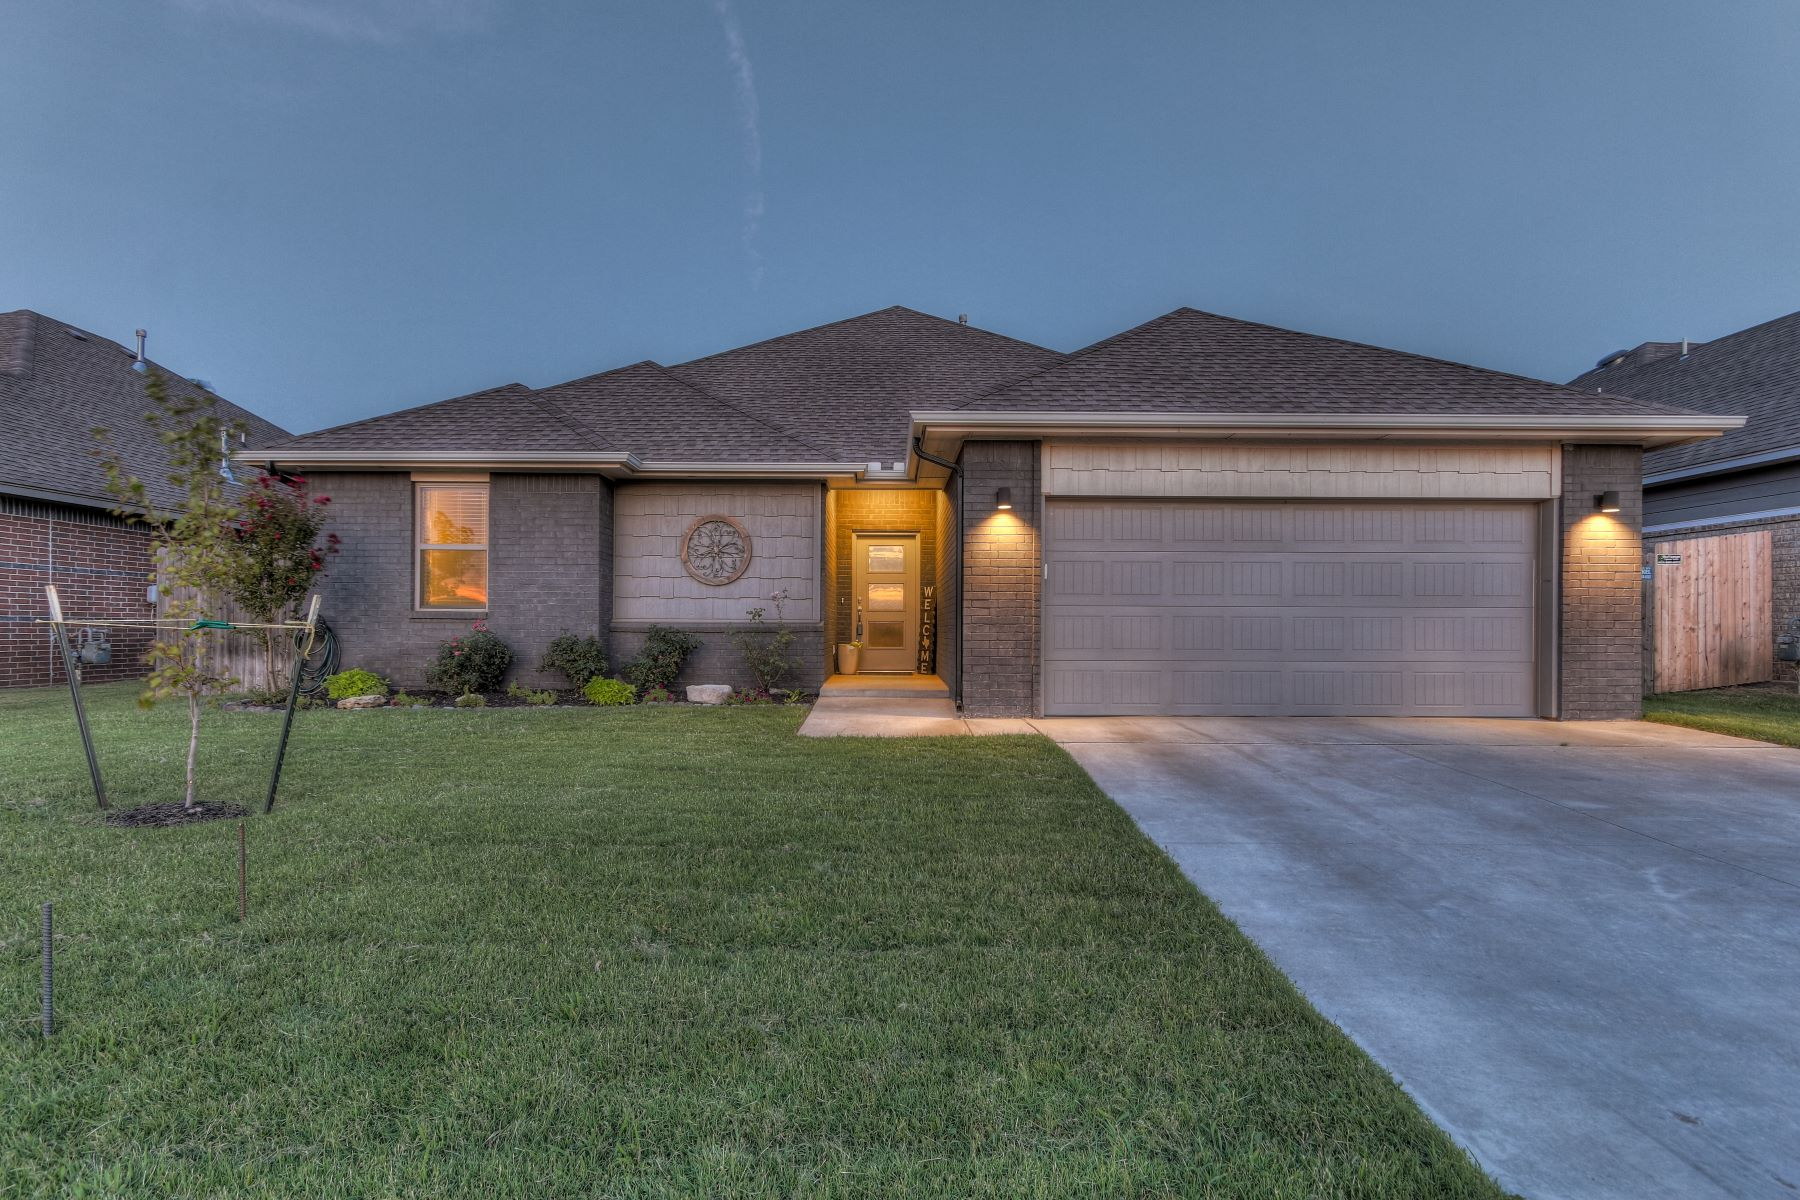 Single Family Homes for Active at Ranch Style Reimagined 10612 Glover River Drive Yukon, Oklahoma 73099 United States